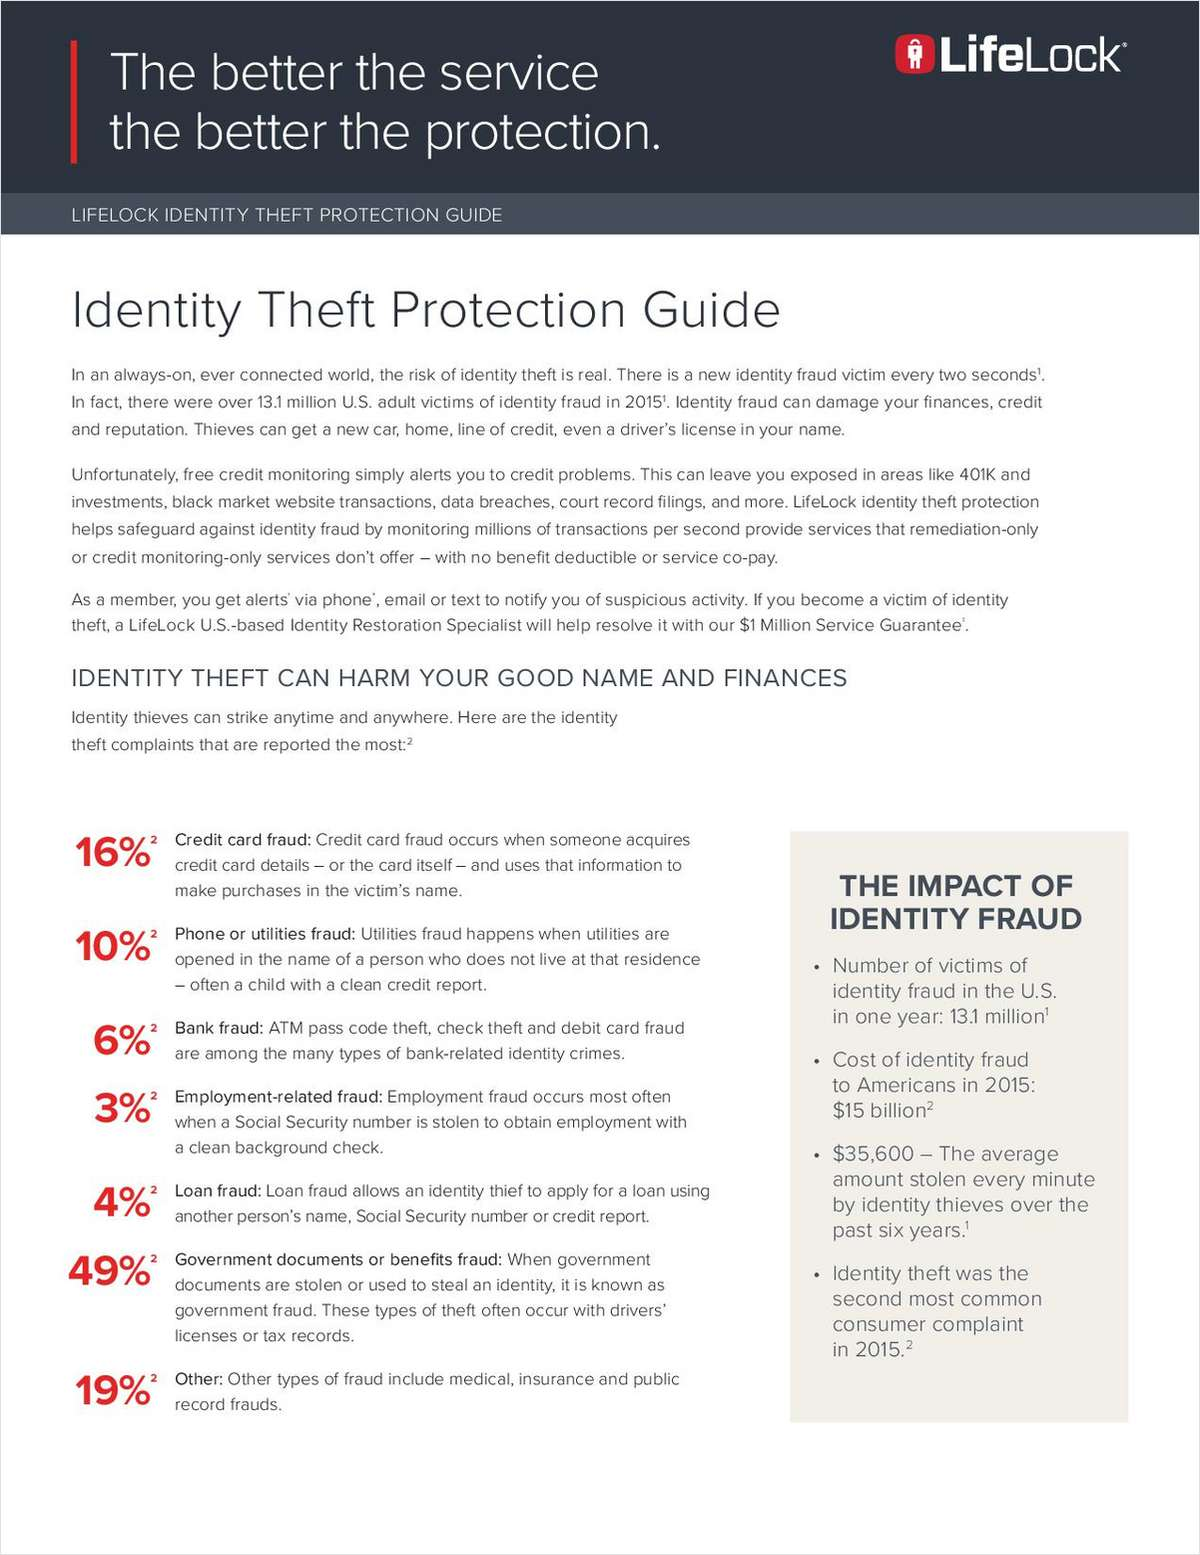 Identity Theft Protection Guide